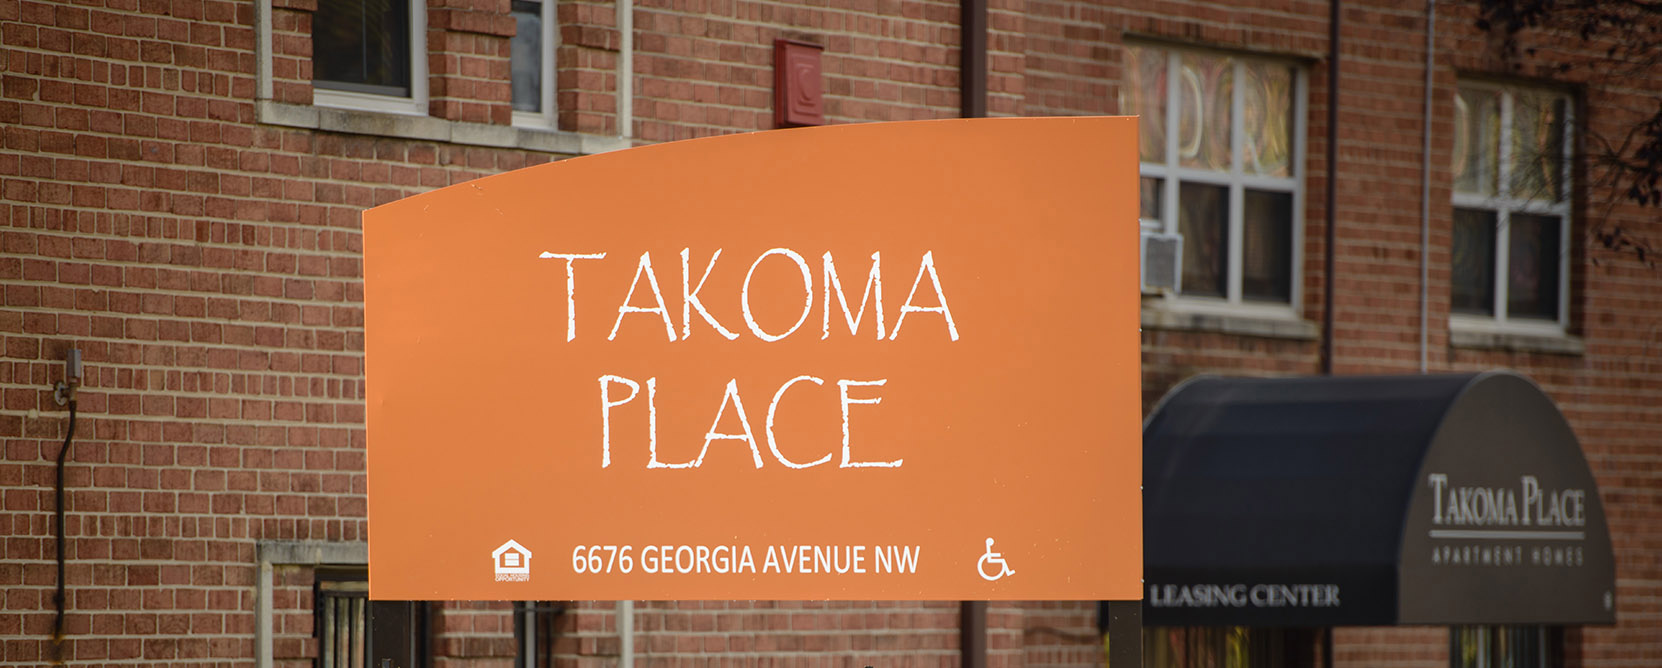 Exterior sign of the Takoma Place apartments